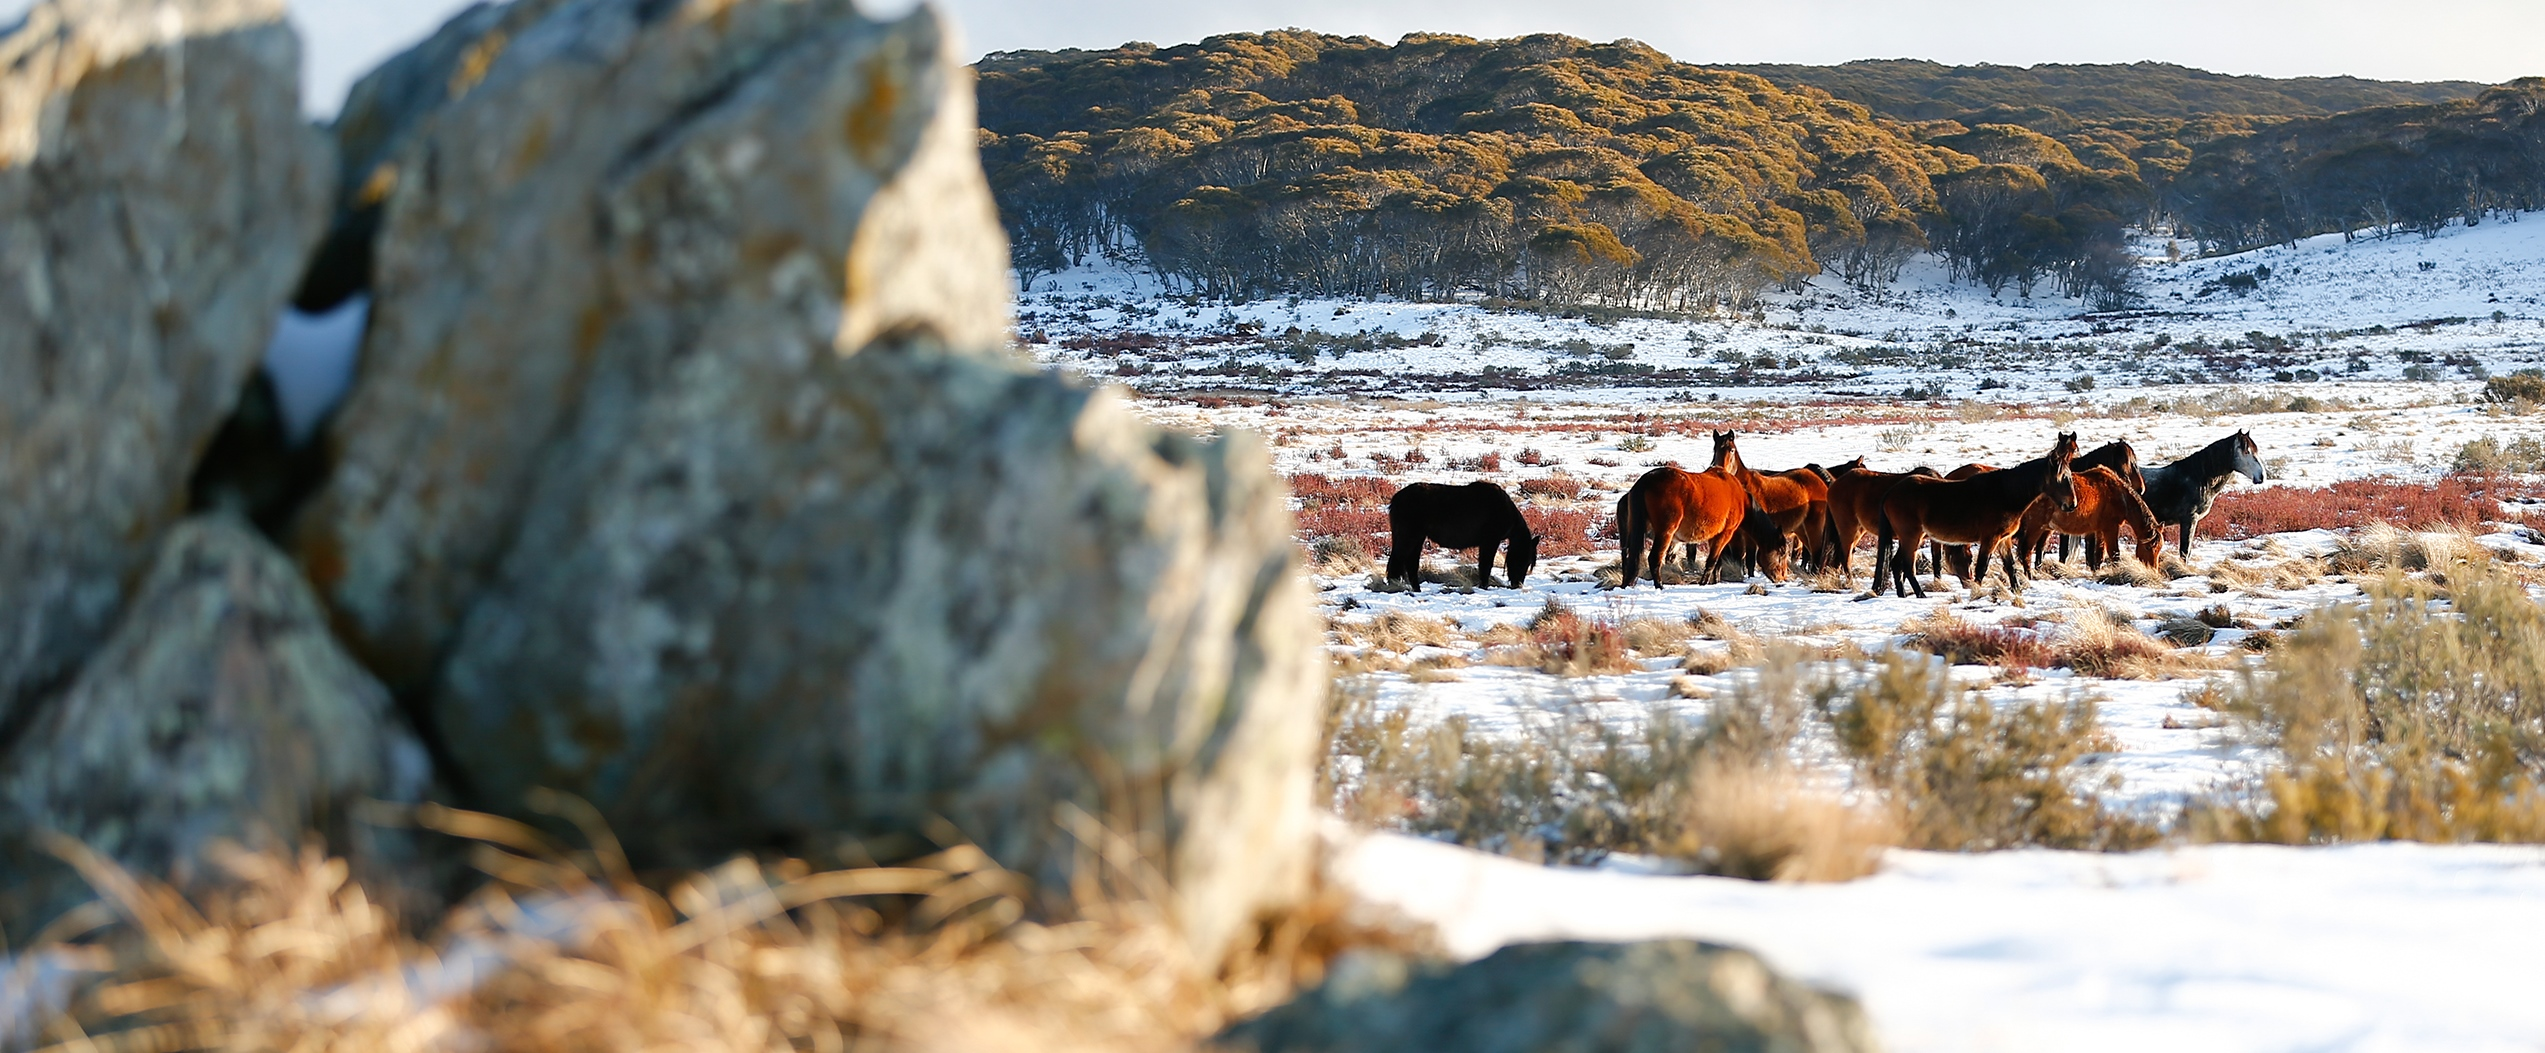 25 Brumbies at Sunset: Australian Snowy Brumbies, Wild Horses of the World